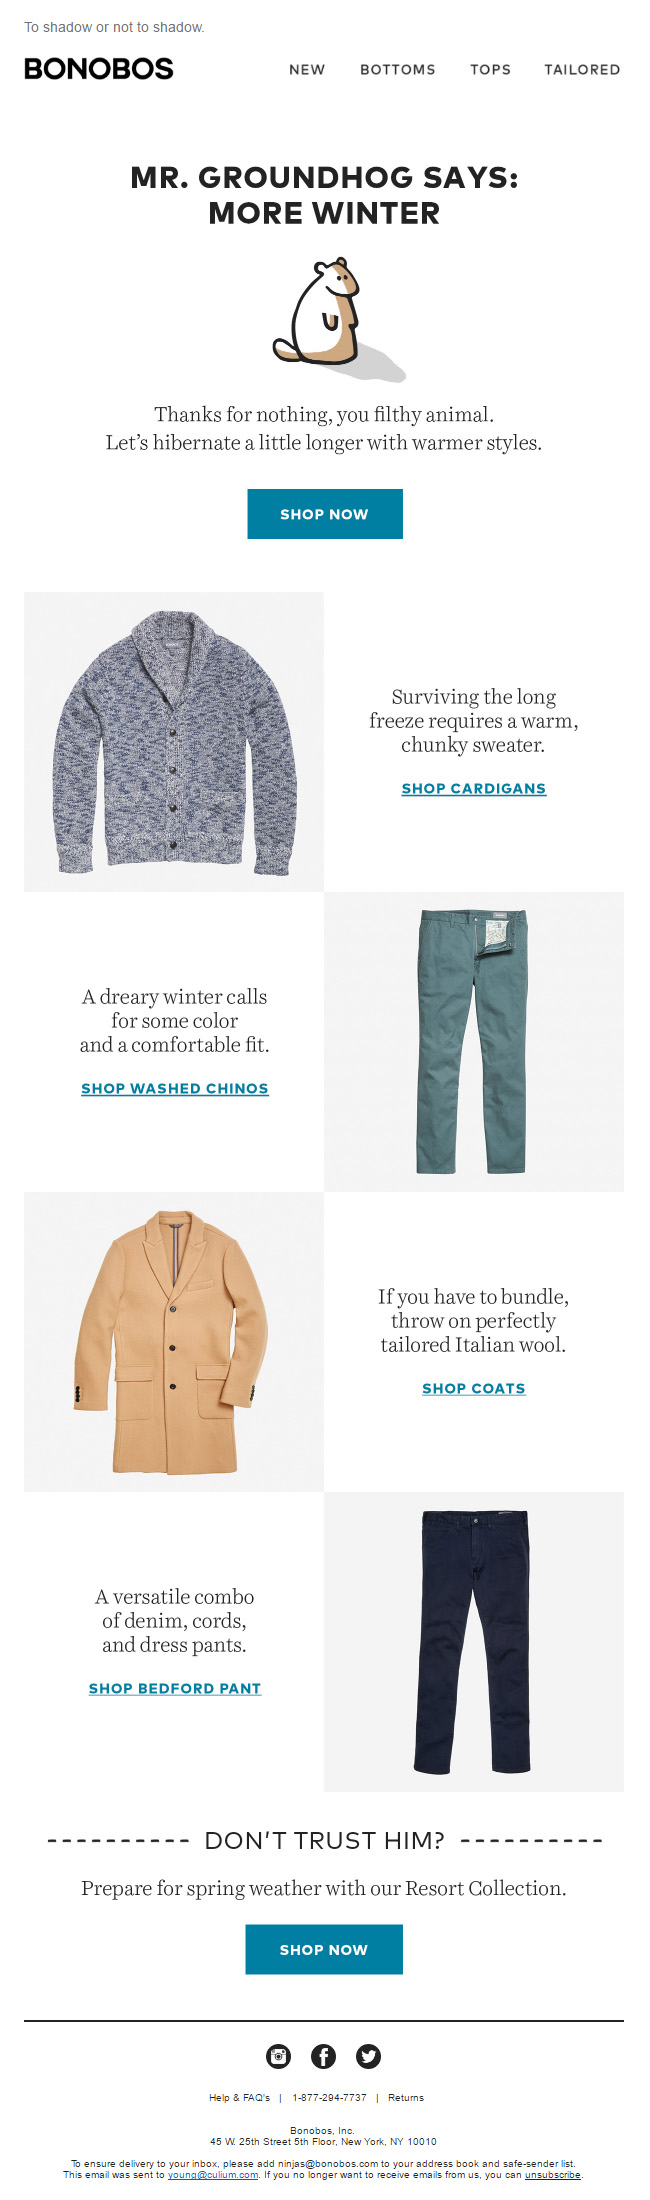 Email from Bonobos on Groundhog Day